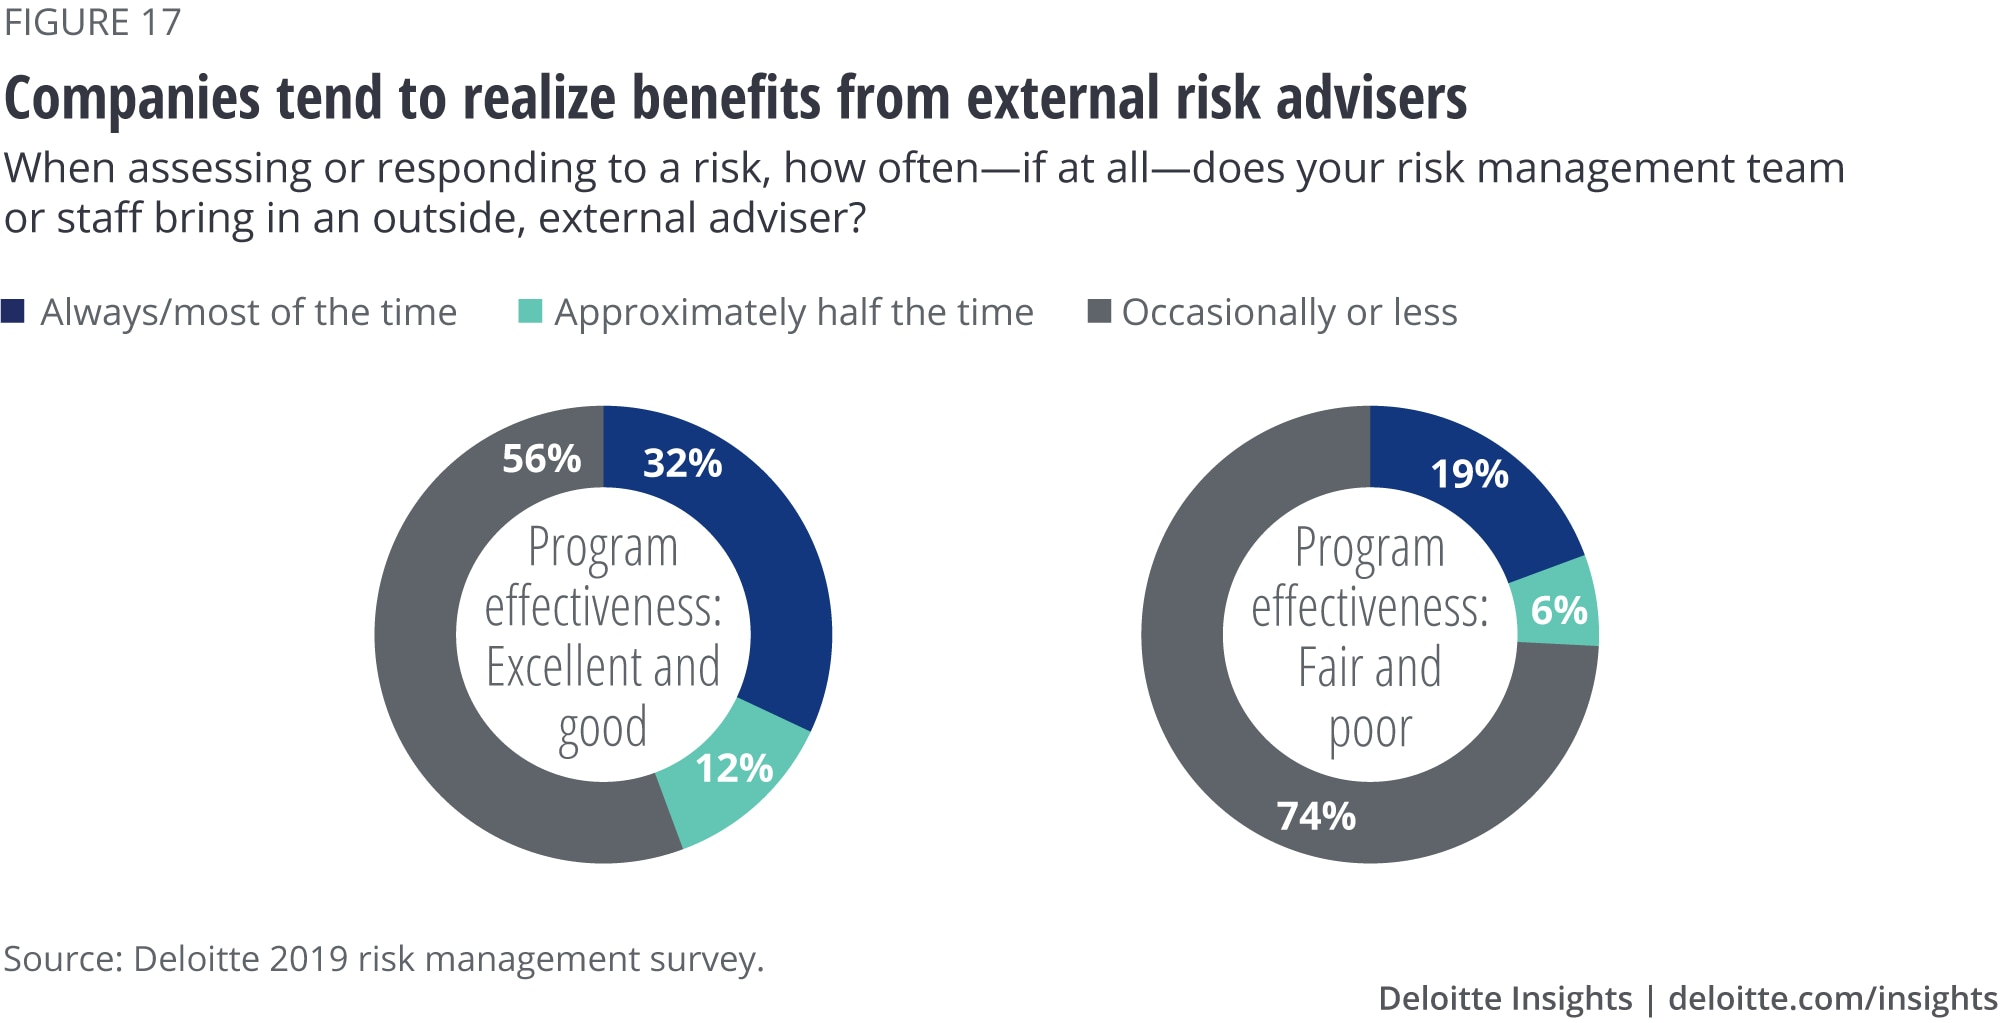 Companies tend to realize benefits from risk advisers